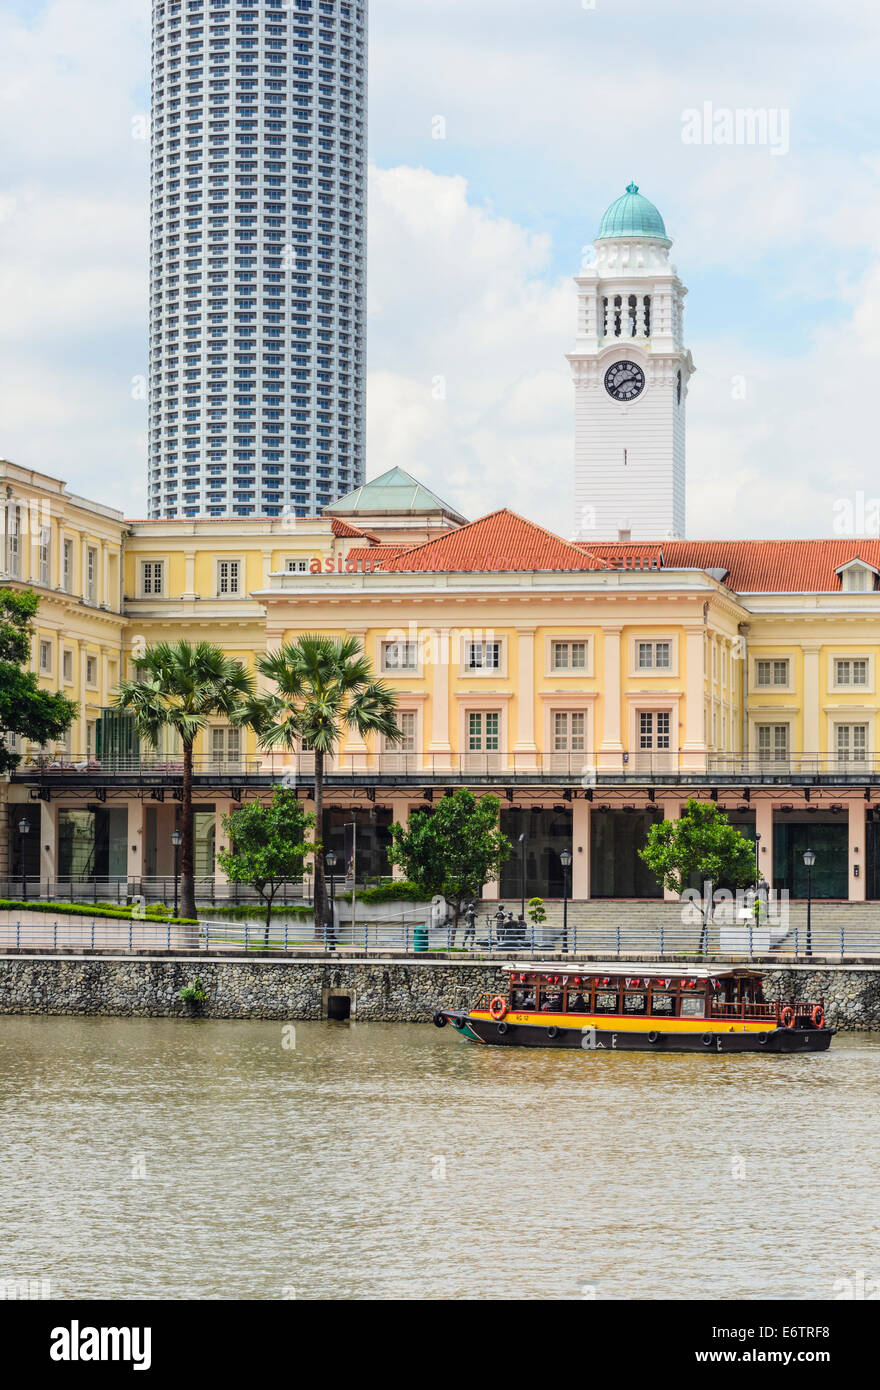 A traditional bumboat in front of the Asian Civilisations Museum in the Empress Place Building, Singapore - Stock Image